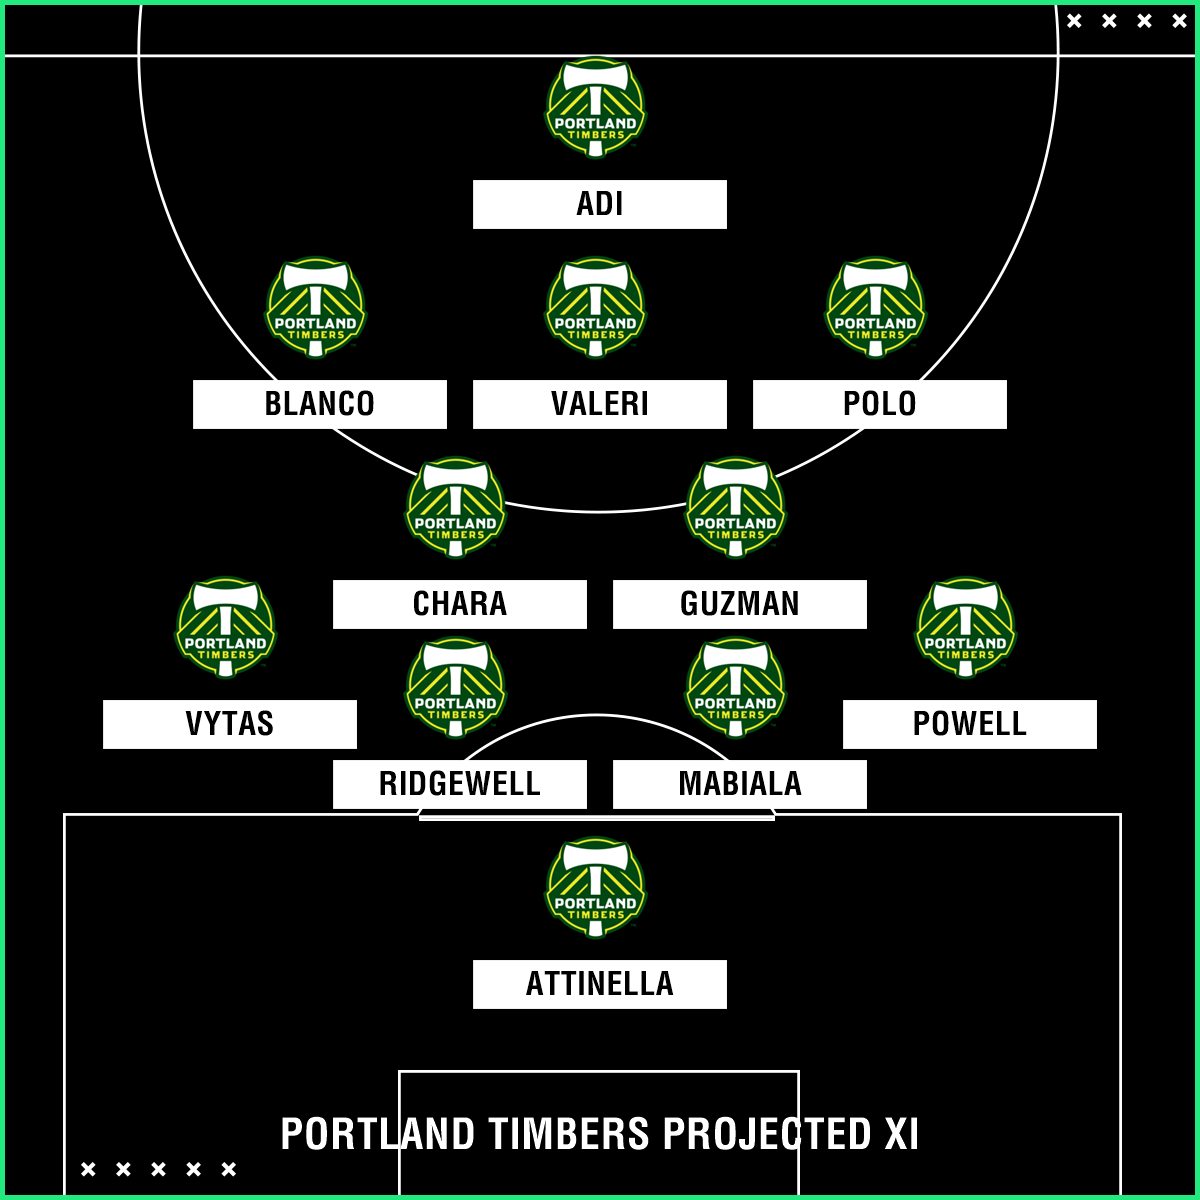 Portland Timbers projected XI